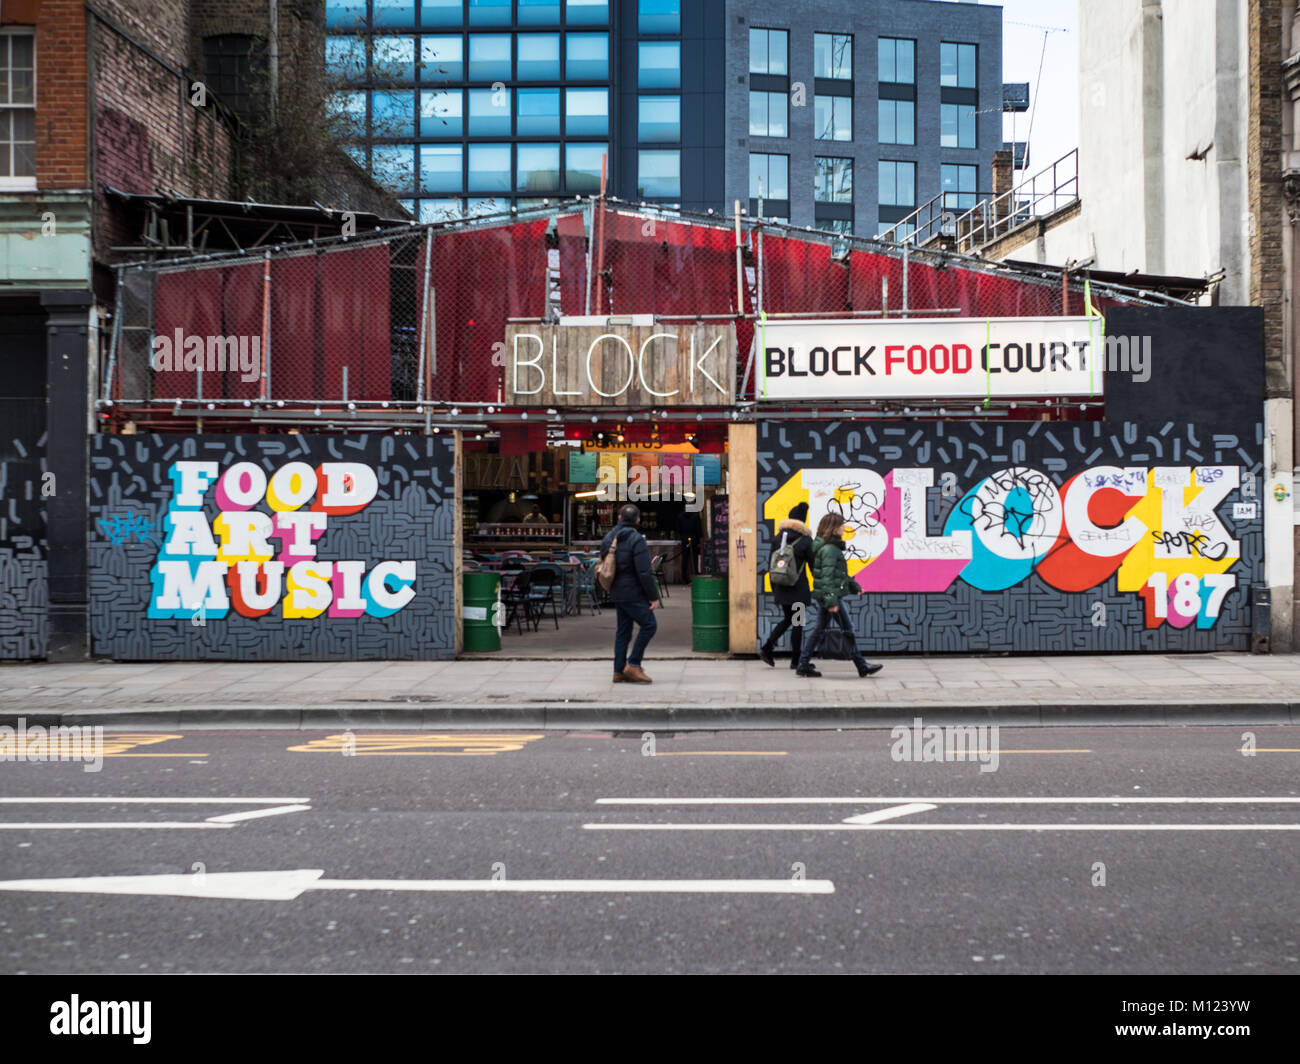 Block Shoreditch Food Court - Street Food market in Shoreditch High St in fashionable Shoreditch East London - Stock Image